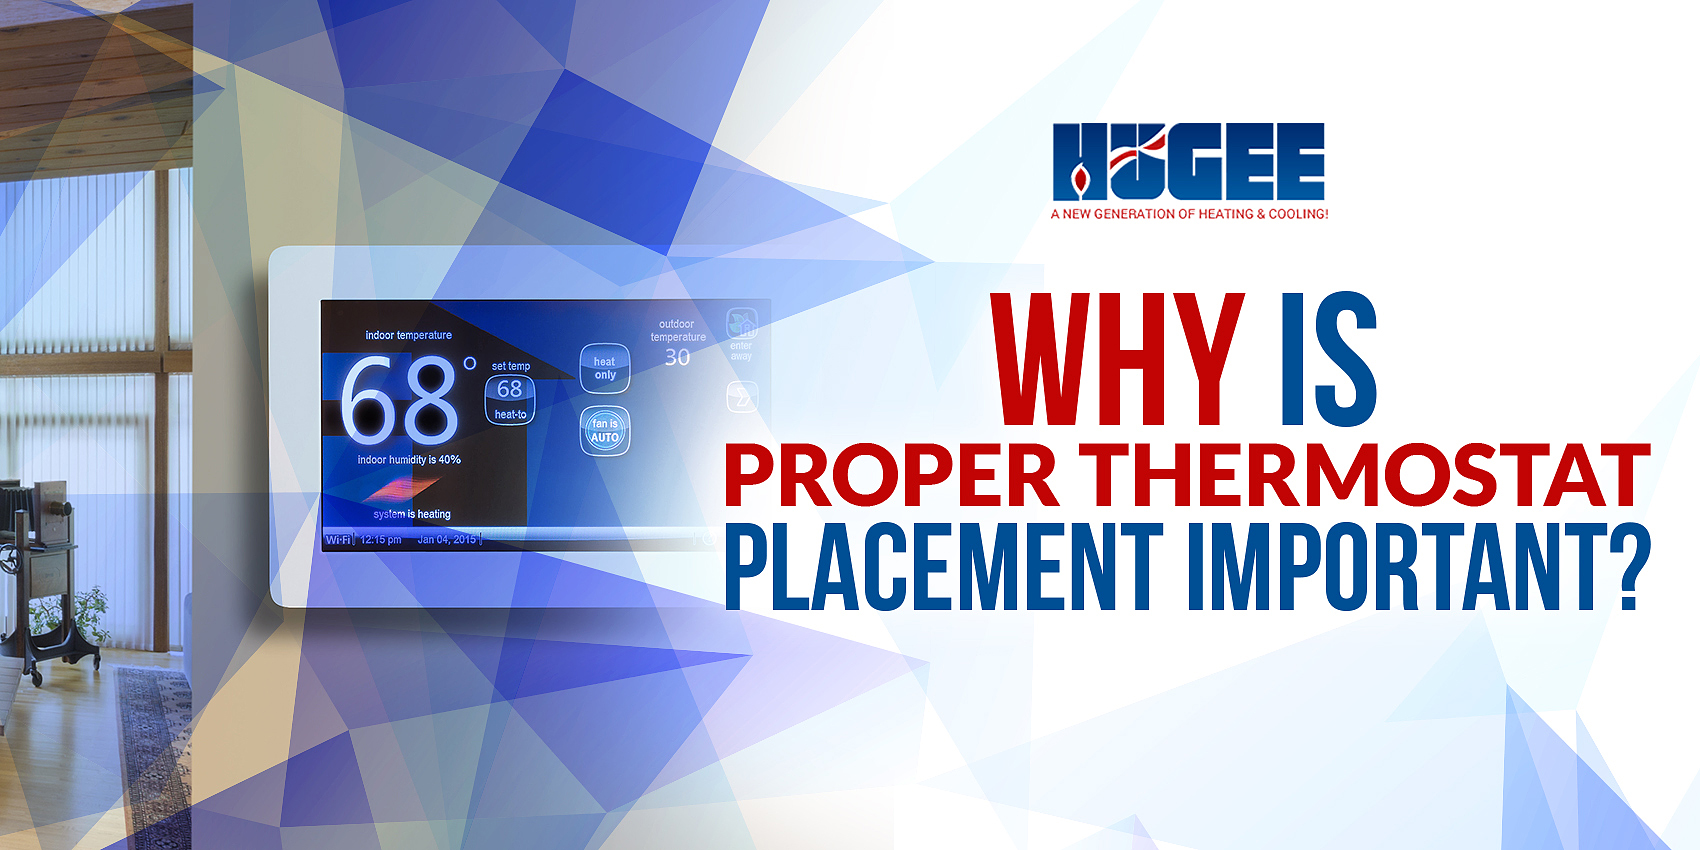 Why Is Proper Thermostat Placement Important?